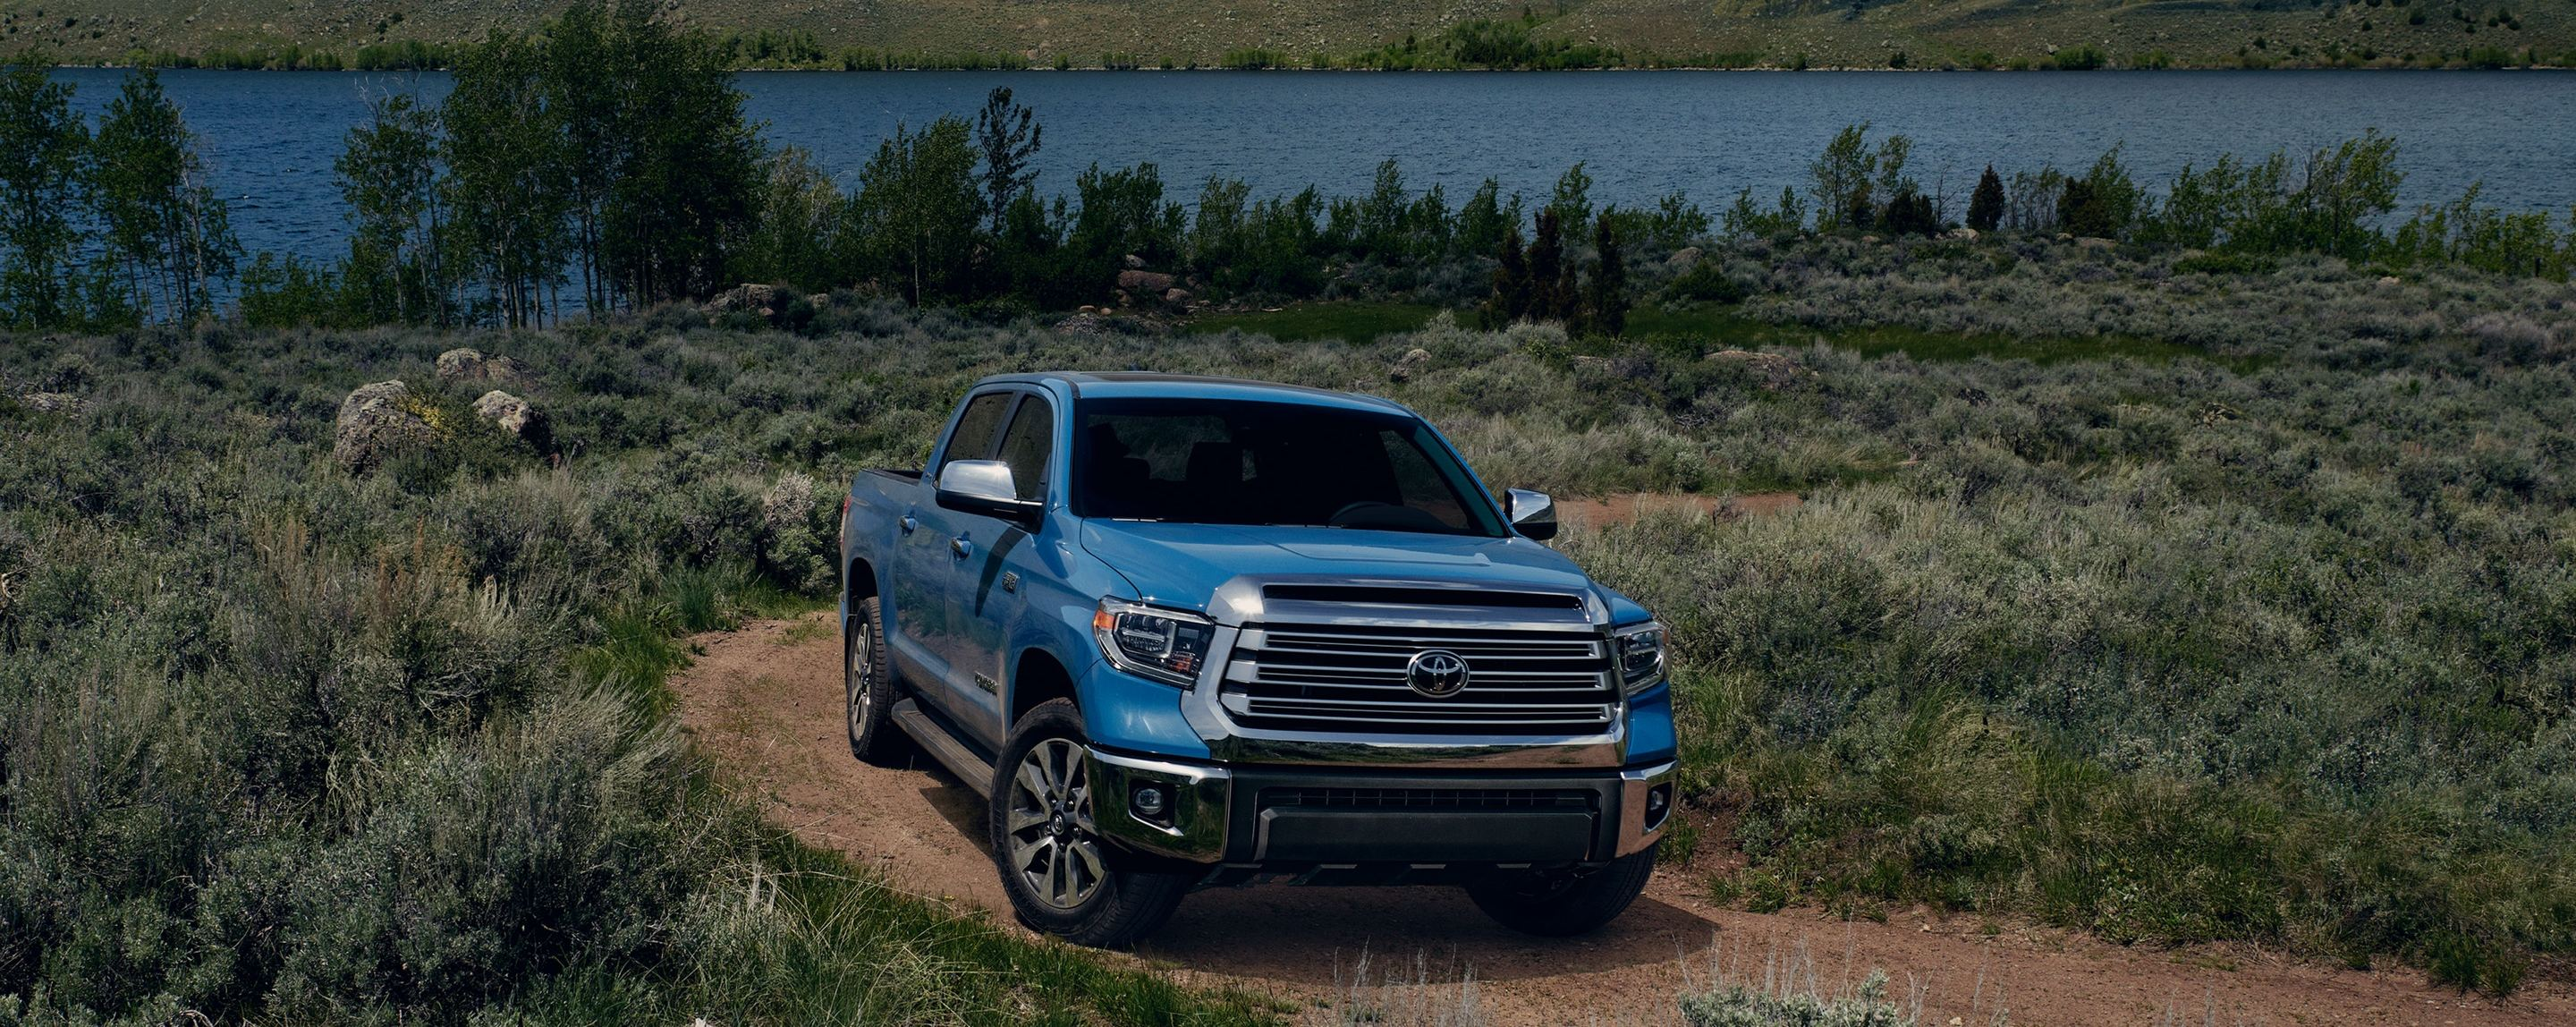 2020 Toyota Tundra for Sale near Loves Park, IL